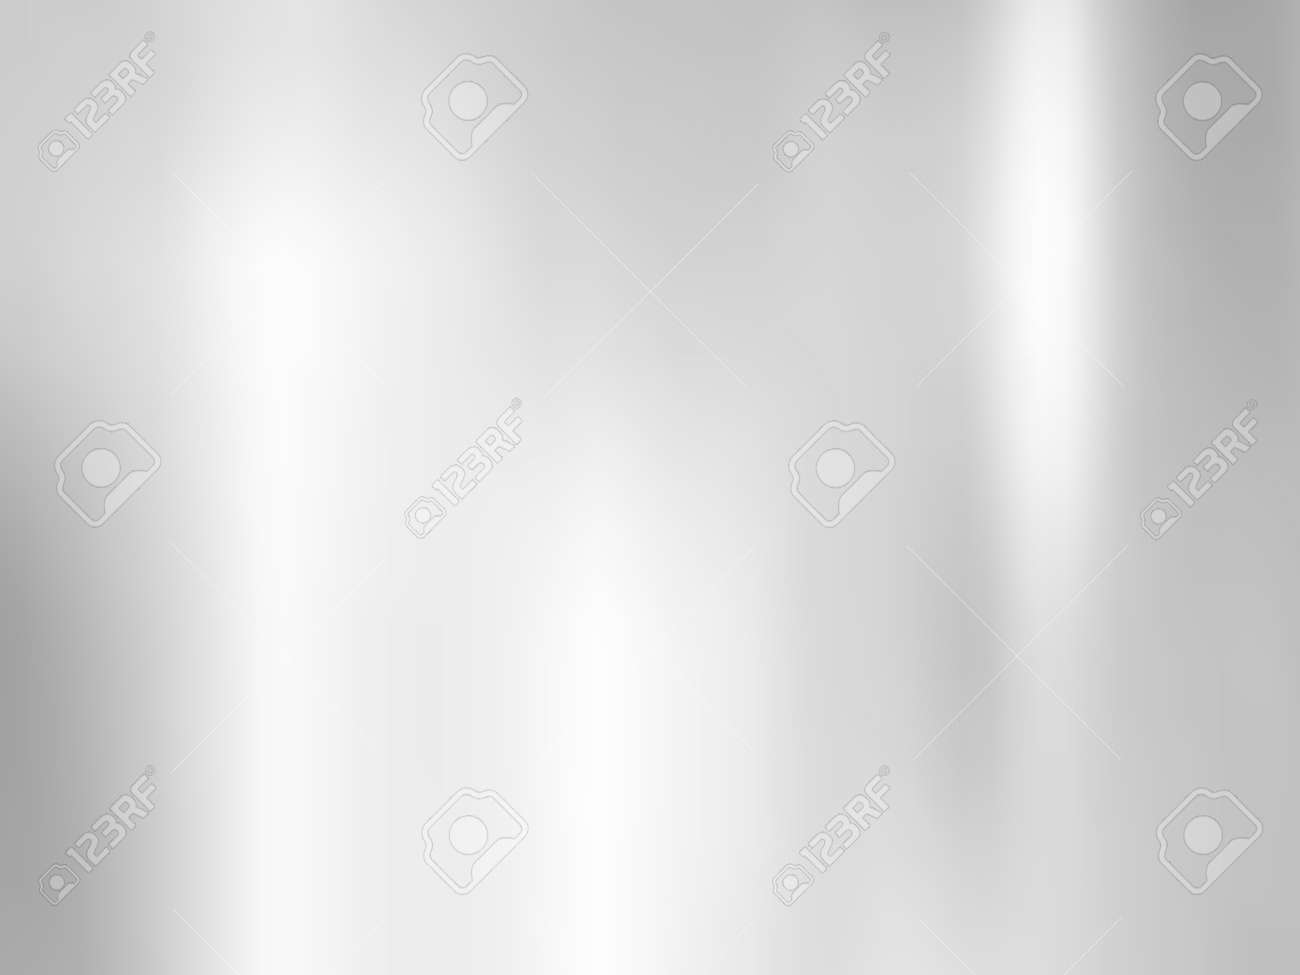 Gray background gradient - abstract silver metal texture - 94394061